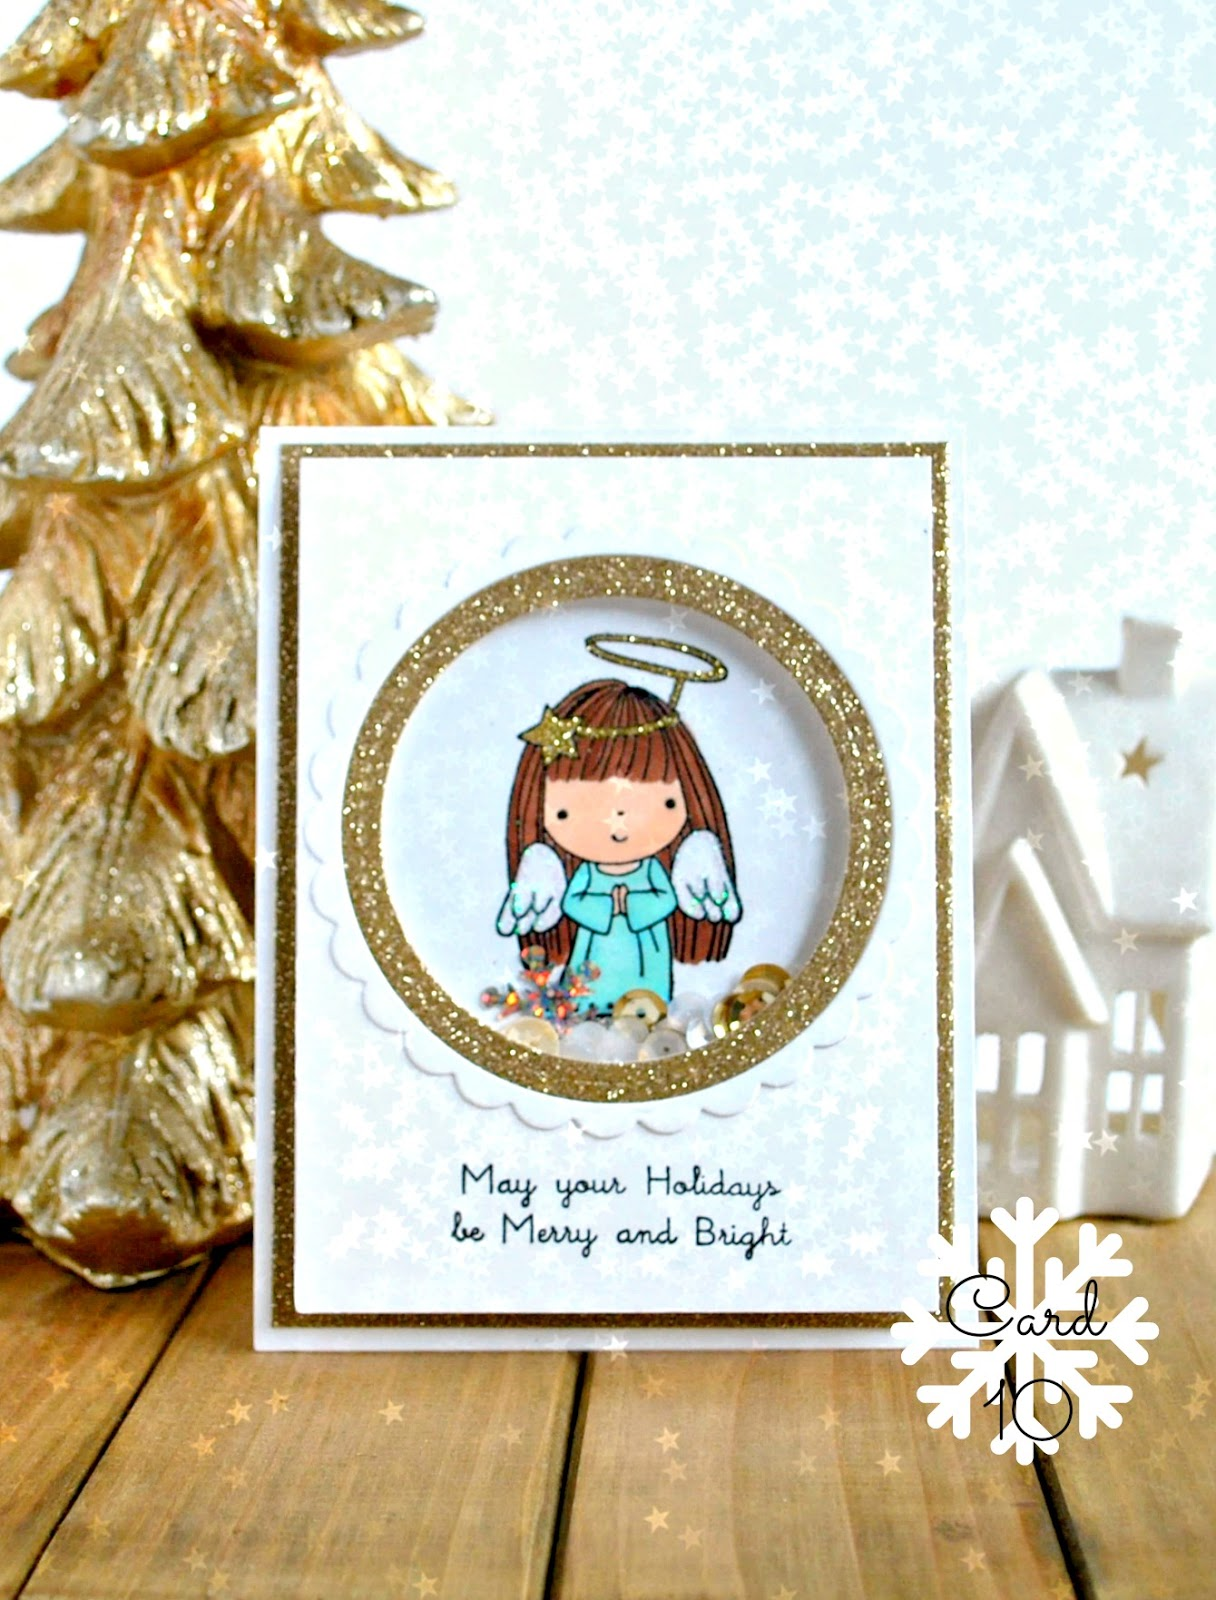 Crafty Creations With Shemaine 25 Days Of Holiday Cards